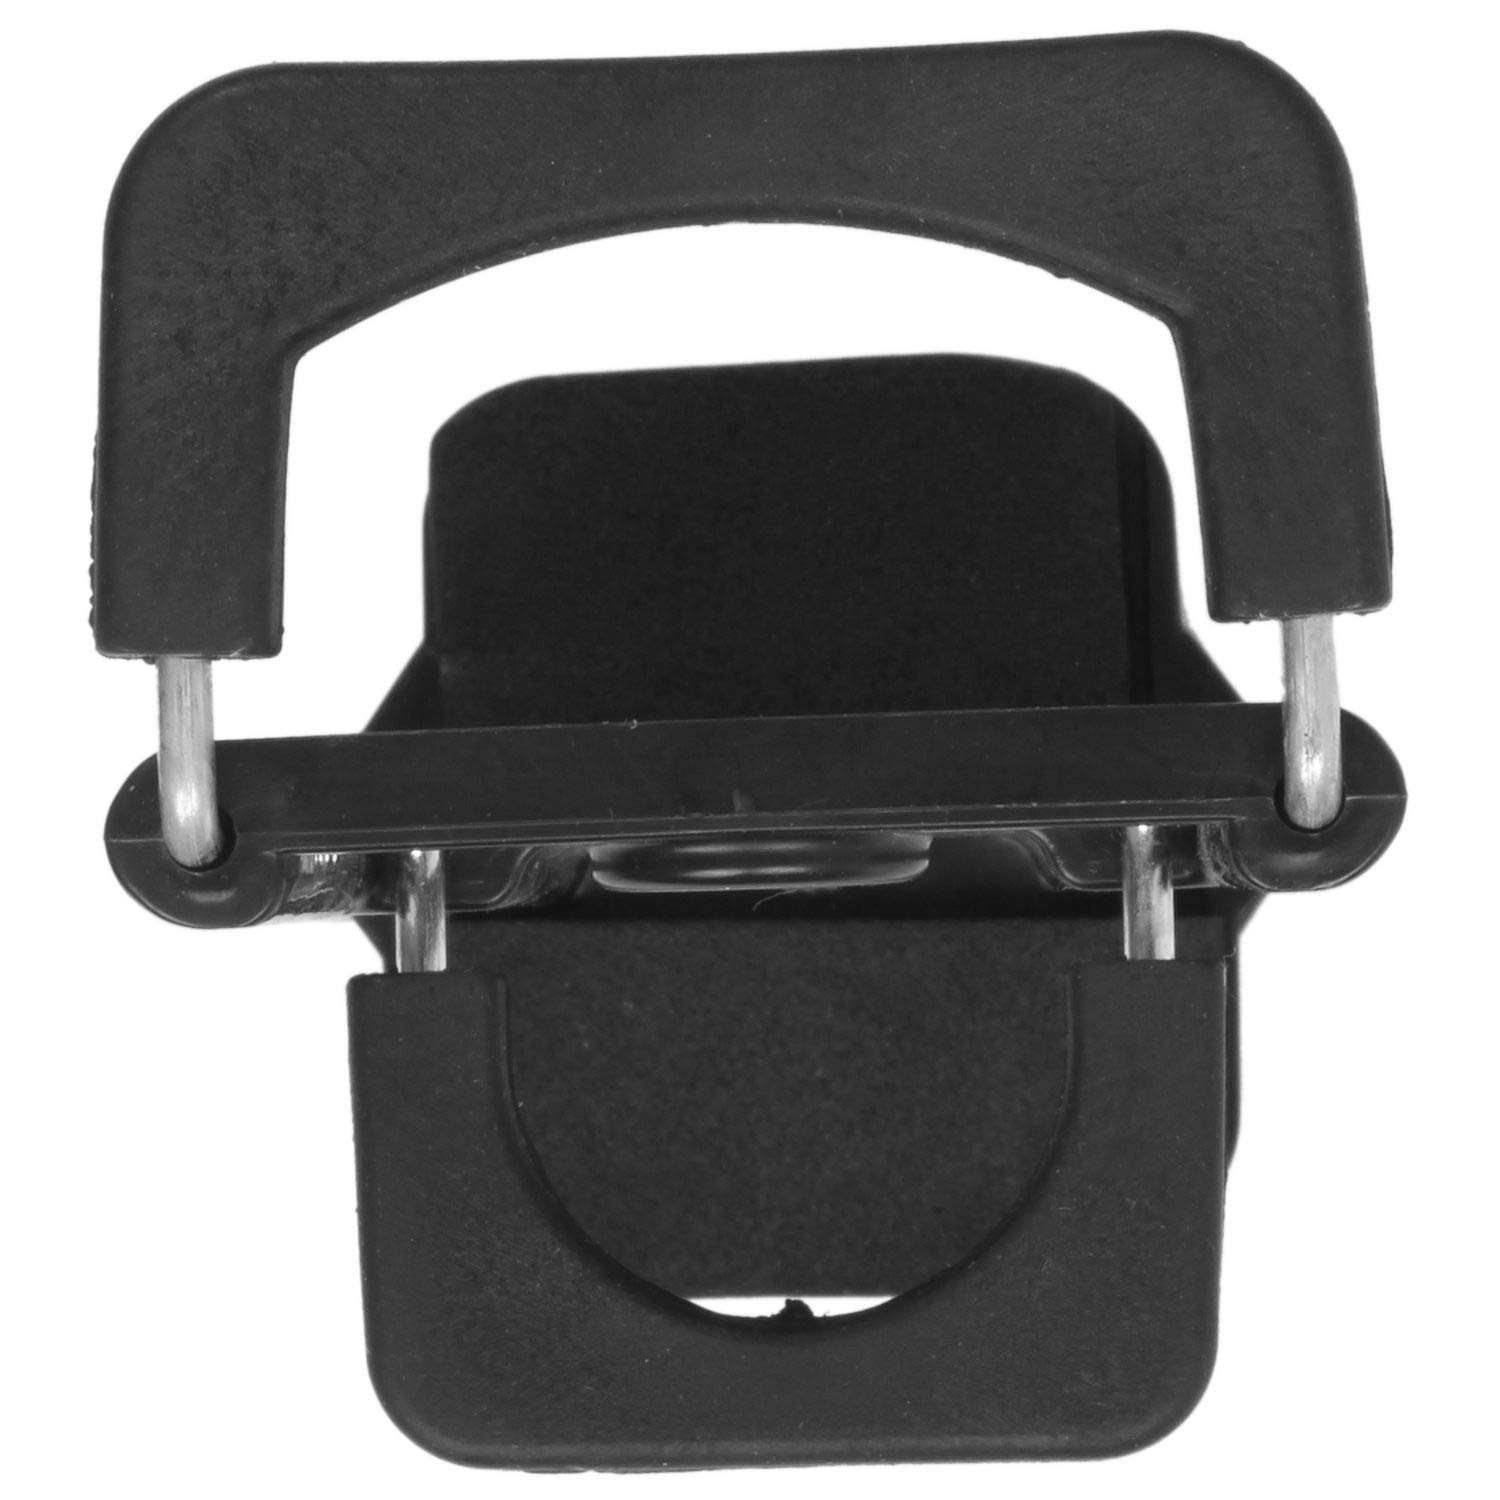 Semoic Universal Tripod Holder Mount Clamp Clip Bracket for Mobile Phone Pad Tablet Camera by Semoic (Image #4)